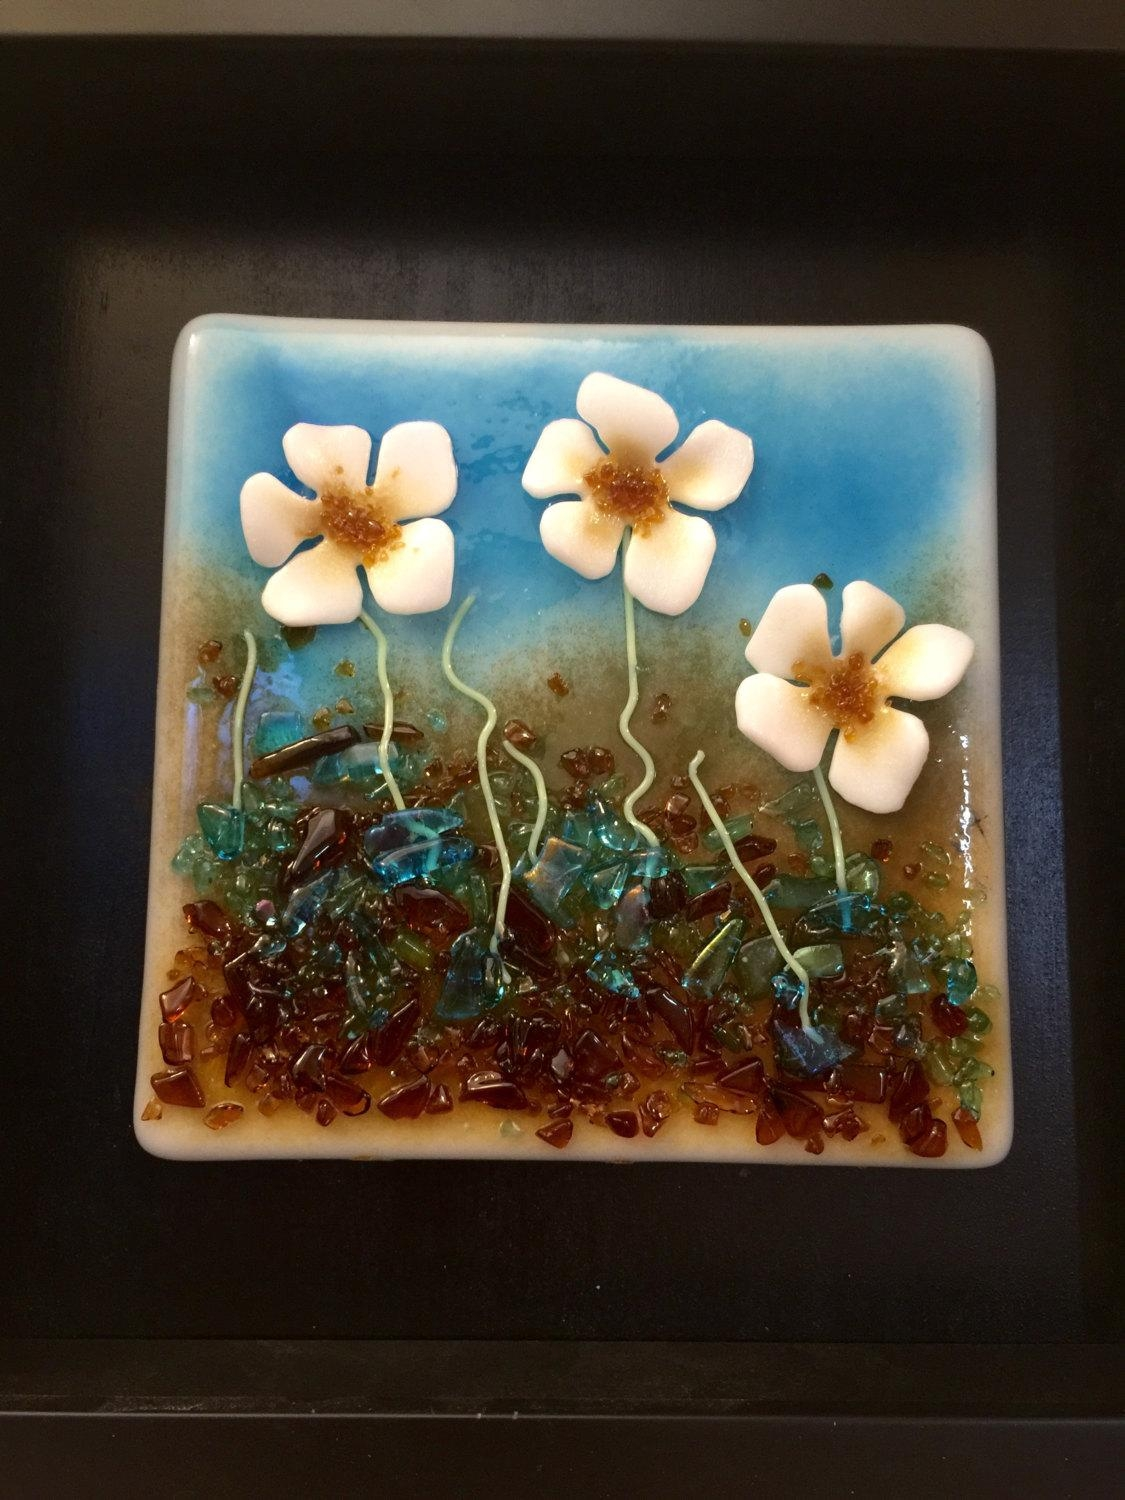 Home Decor, Fused Glass, Handmade Fused Glass, Wall Panel, Fused Within Fused Glass Flower Wall Art (View 12 of 20)